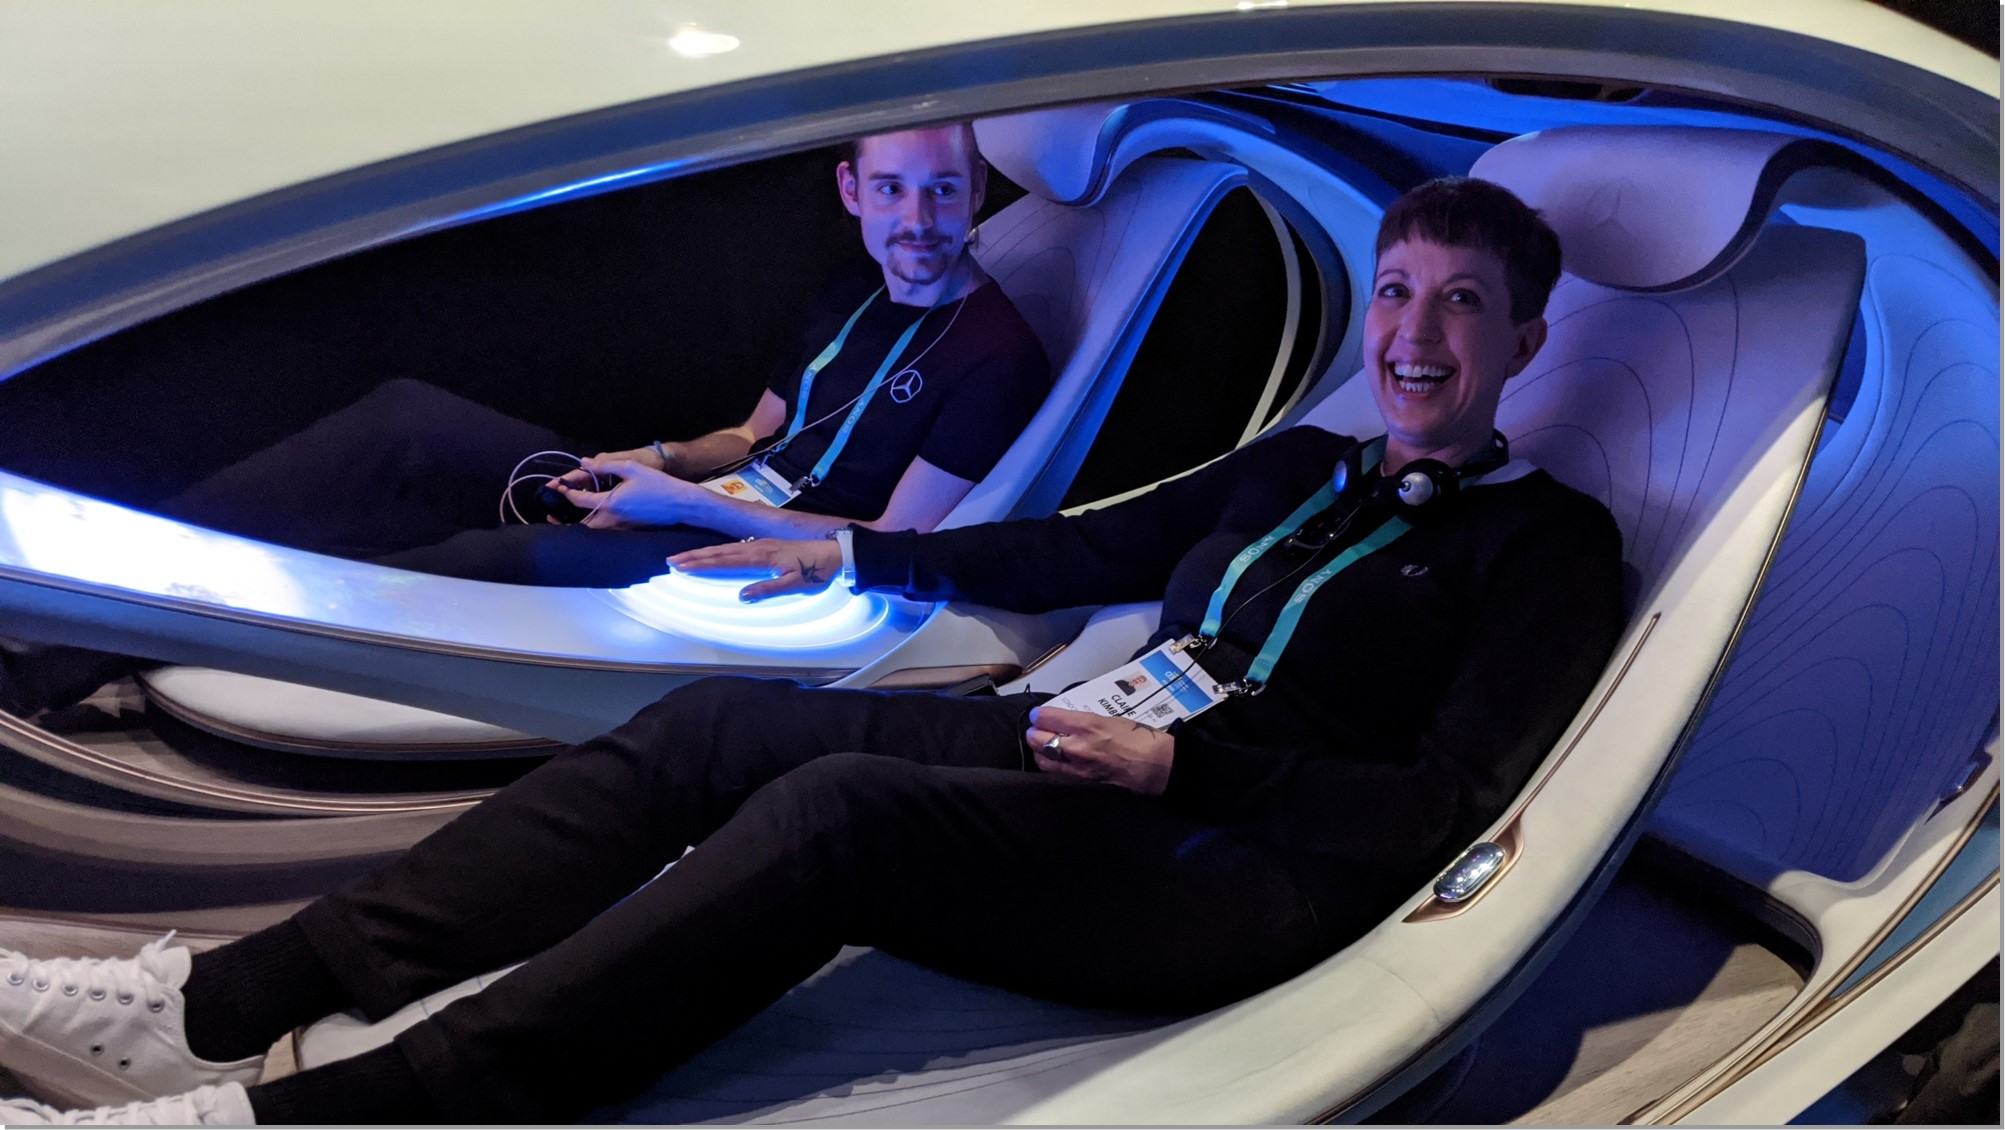 CES 2020: the Symbiosis of Human and Maching